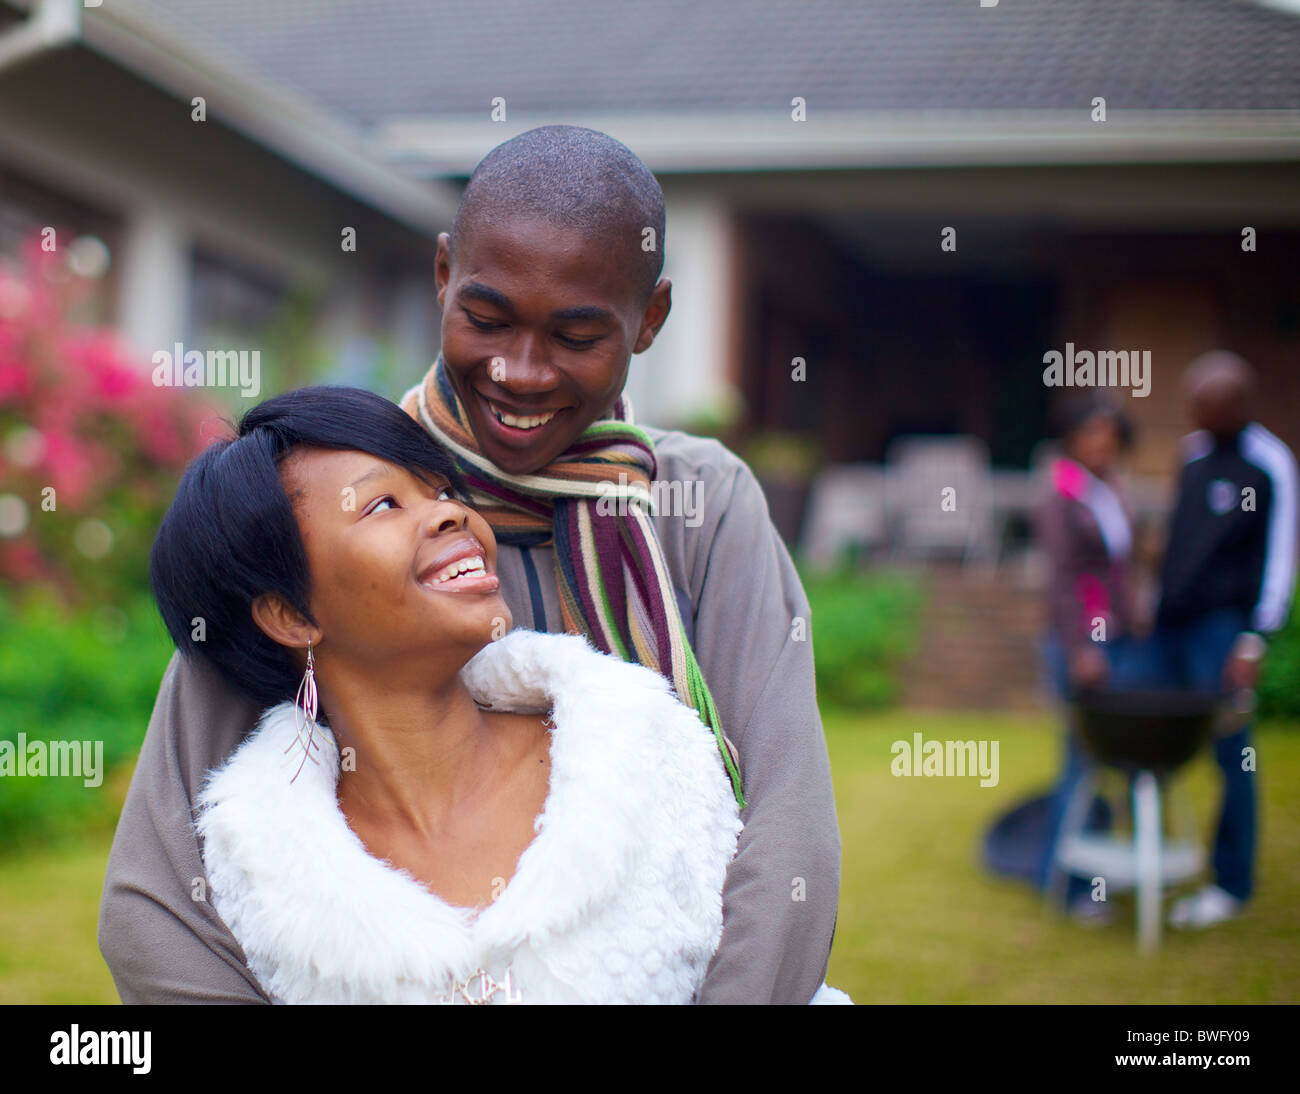 Young couple looking at each other, KwaZulu-Natal, South Africa - Stock Image